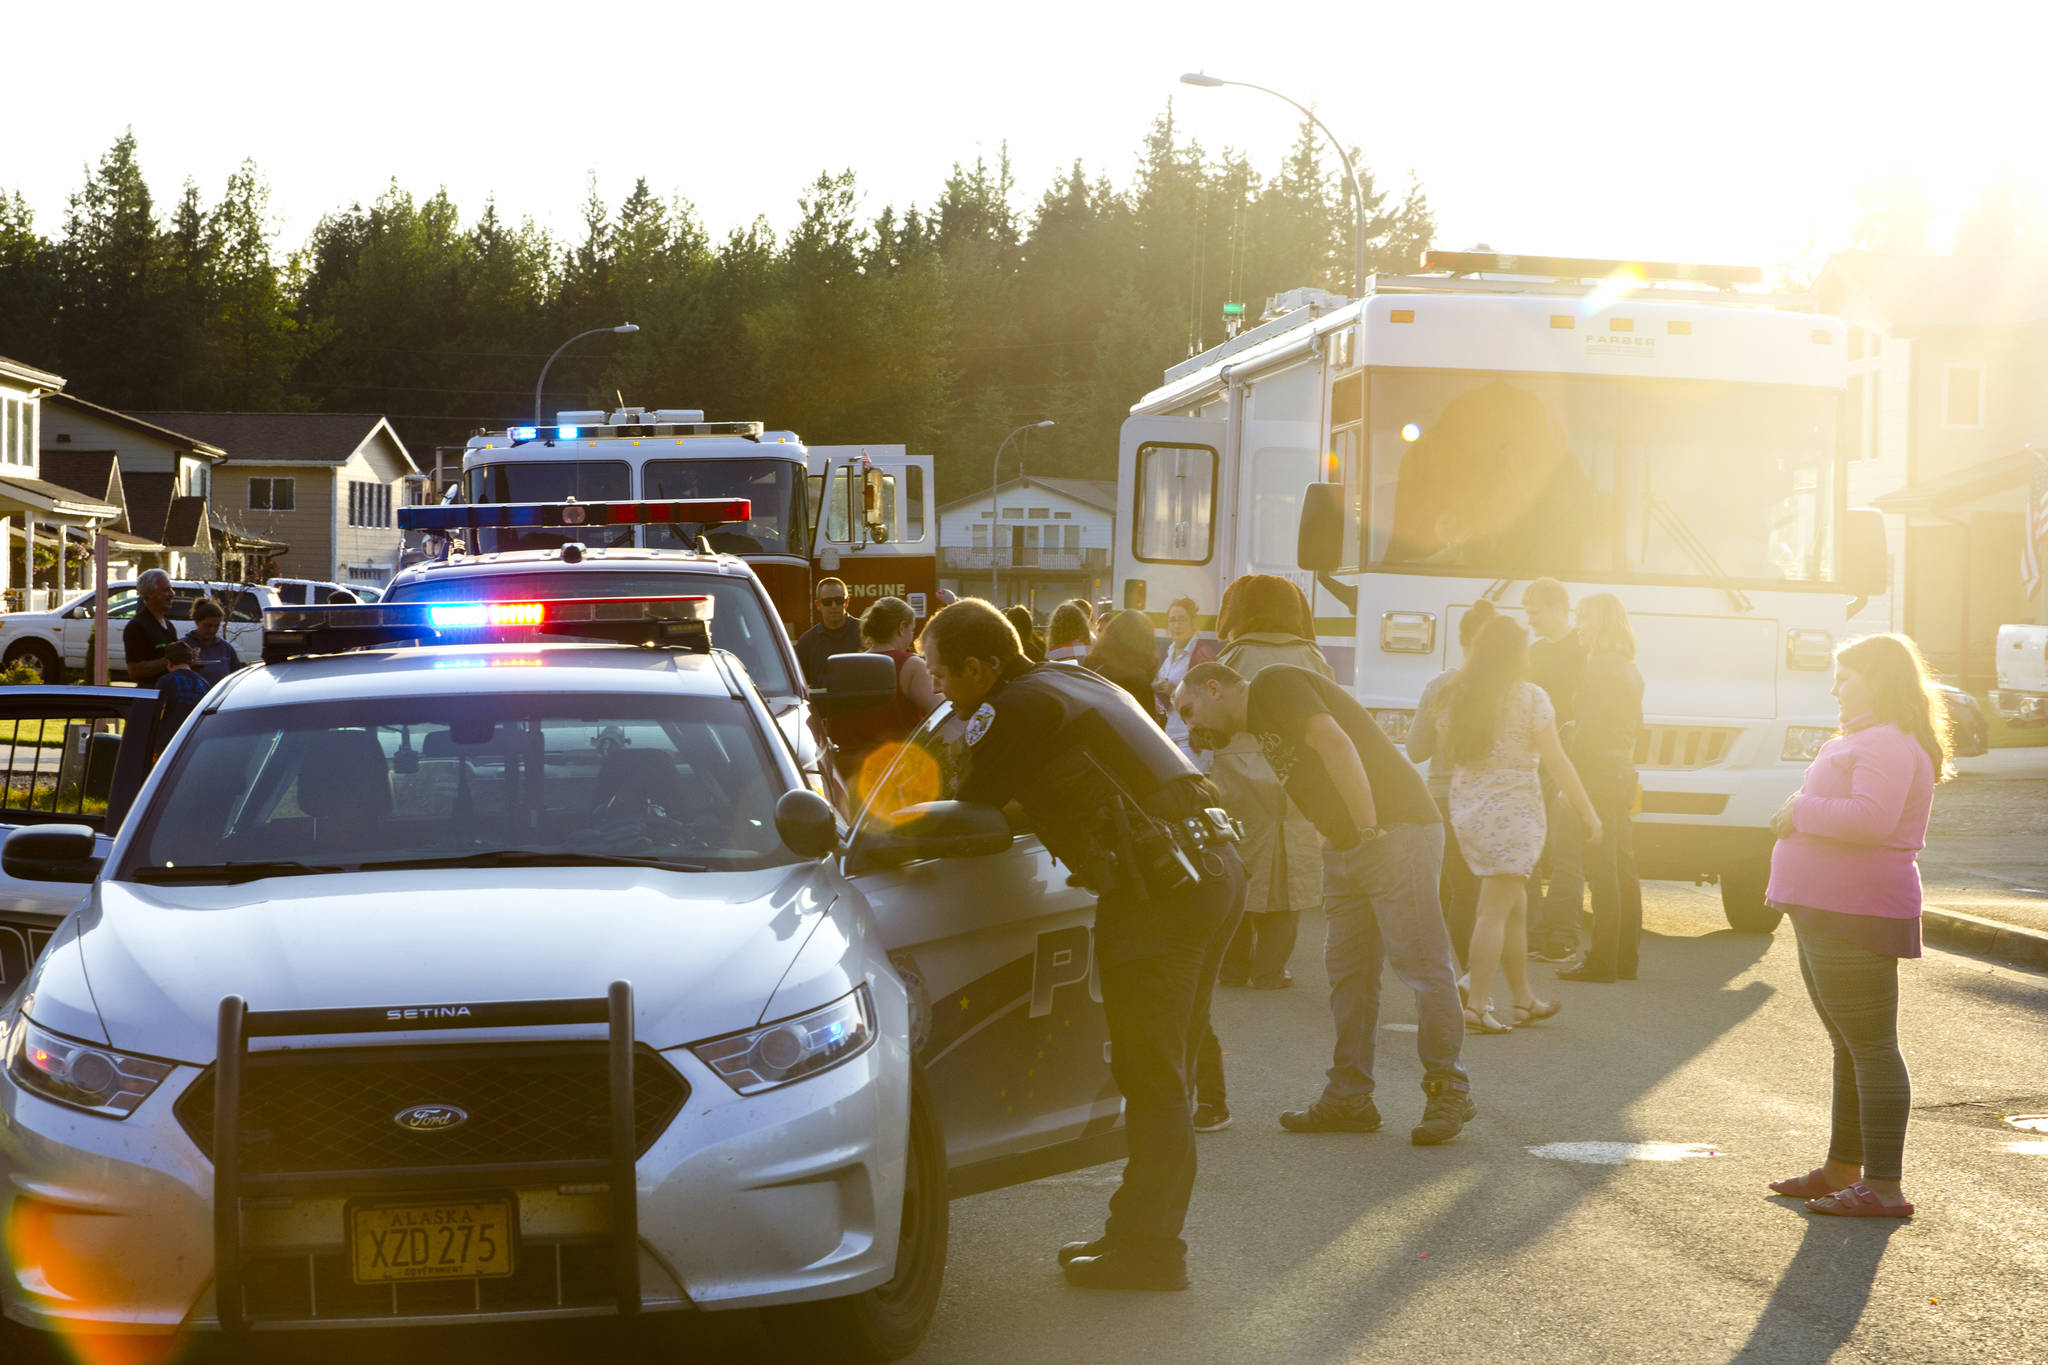 The Juneau Police Department organized participation in the National Night Out for all Juneau public services, including Capital City Fire/Rescue, the Alaska State Troopers, and other uniformed and nonuniformed public services, Aug. 6, 2019. (Michael S. Lockett | Juneau Empire)